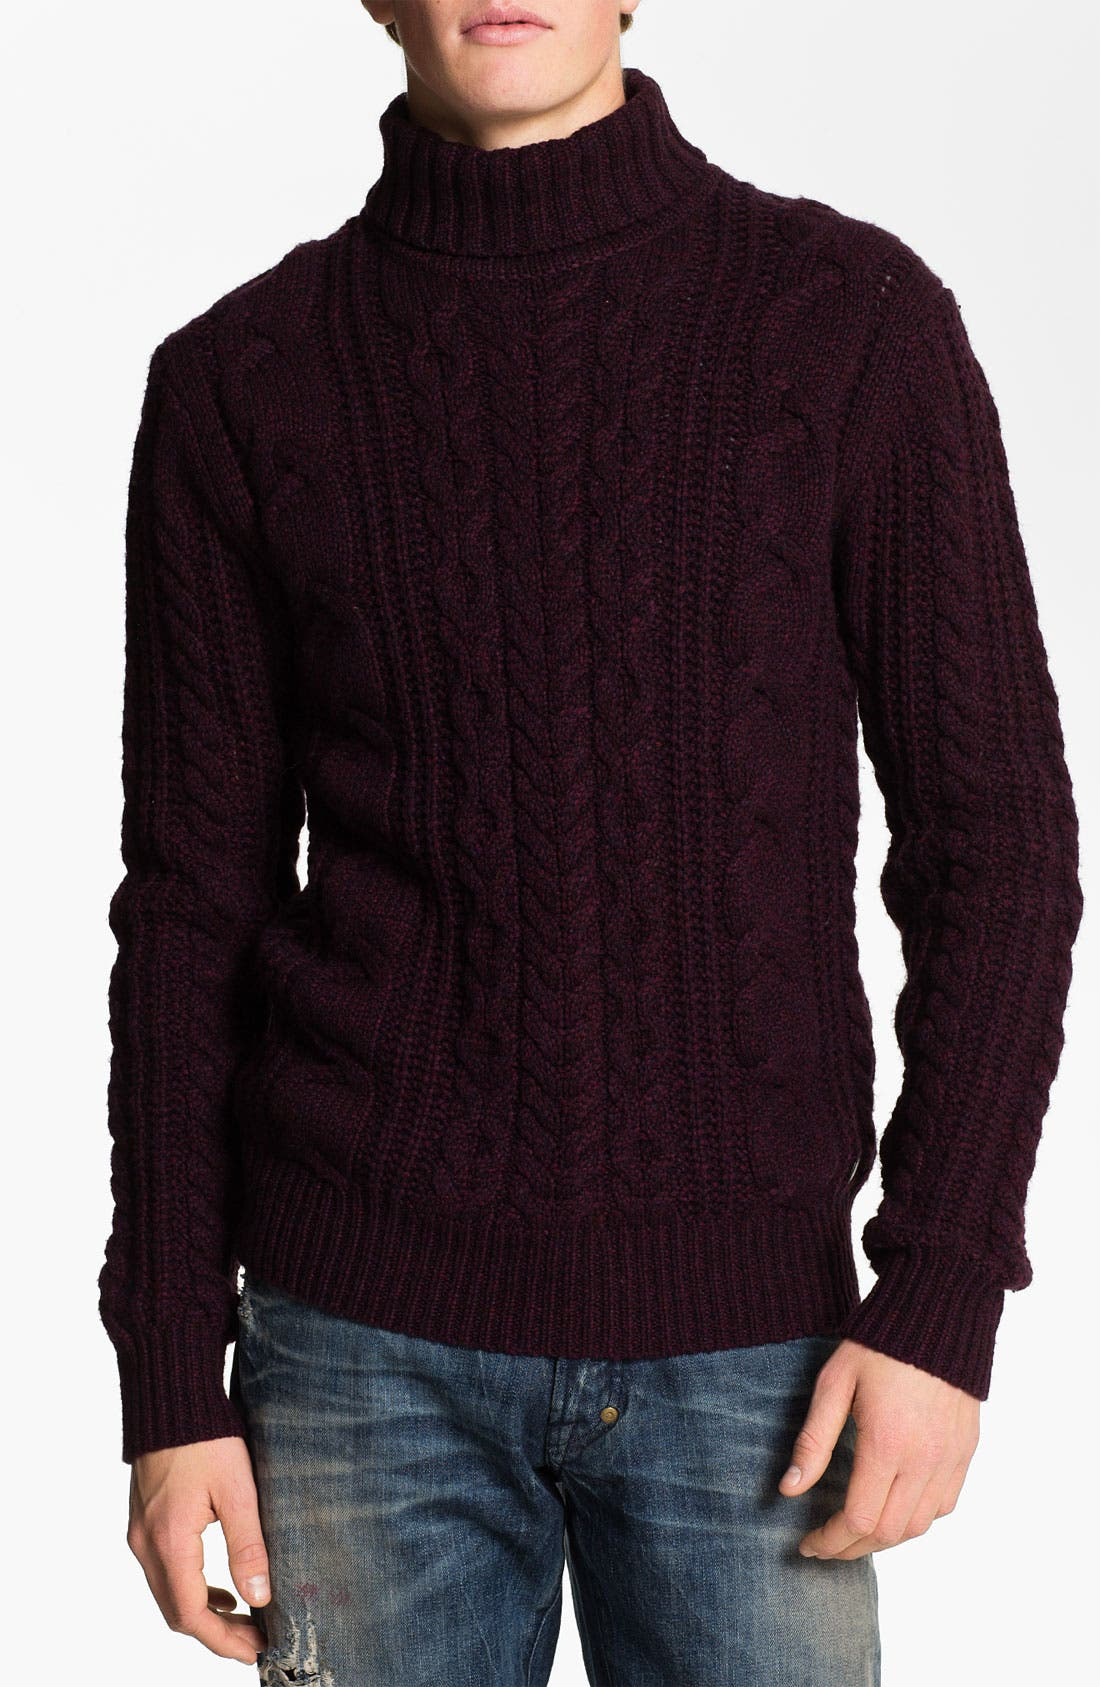 Main Image - PLECTRUM by Ben Sherman Cable Knit Turtleneck Sweater